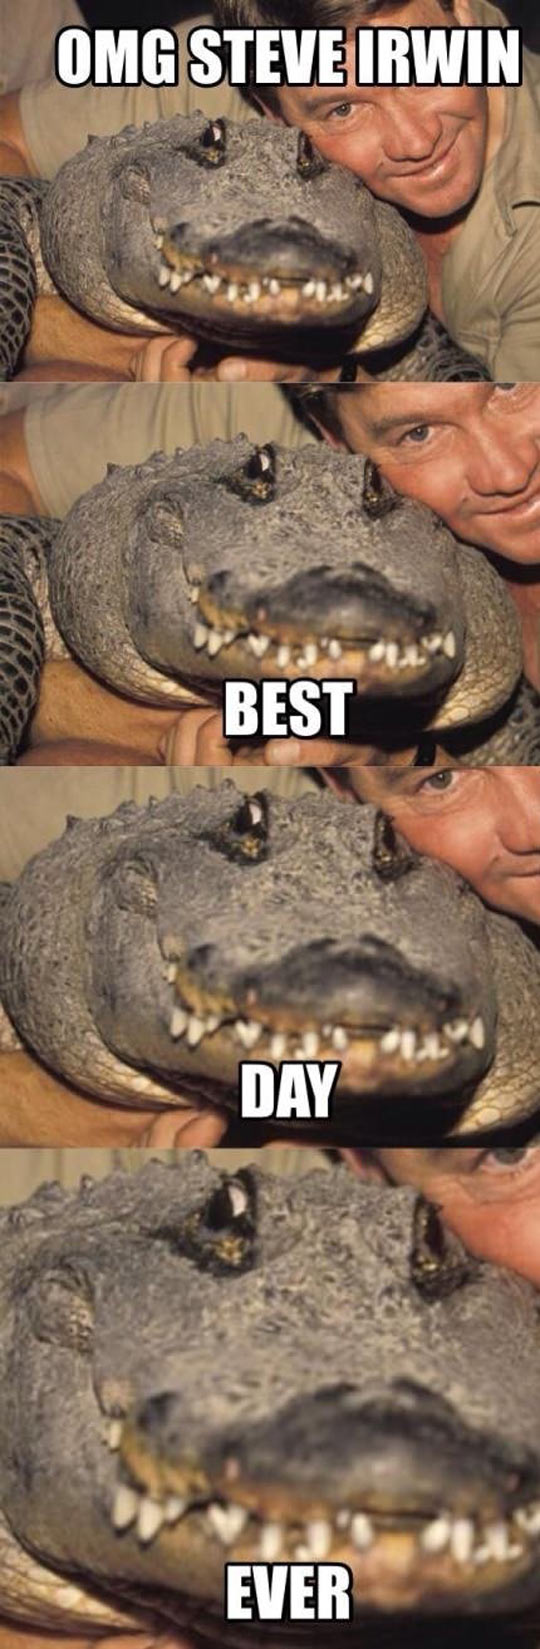 funny-alligator-Steve-Irwin-fan